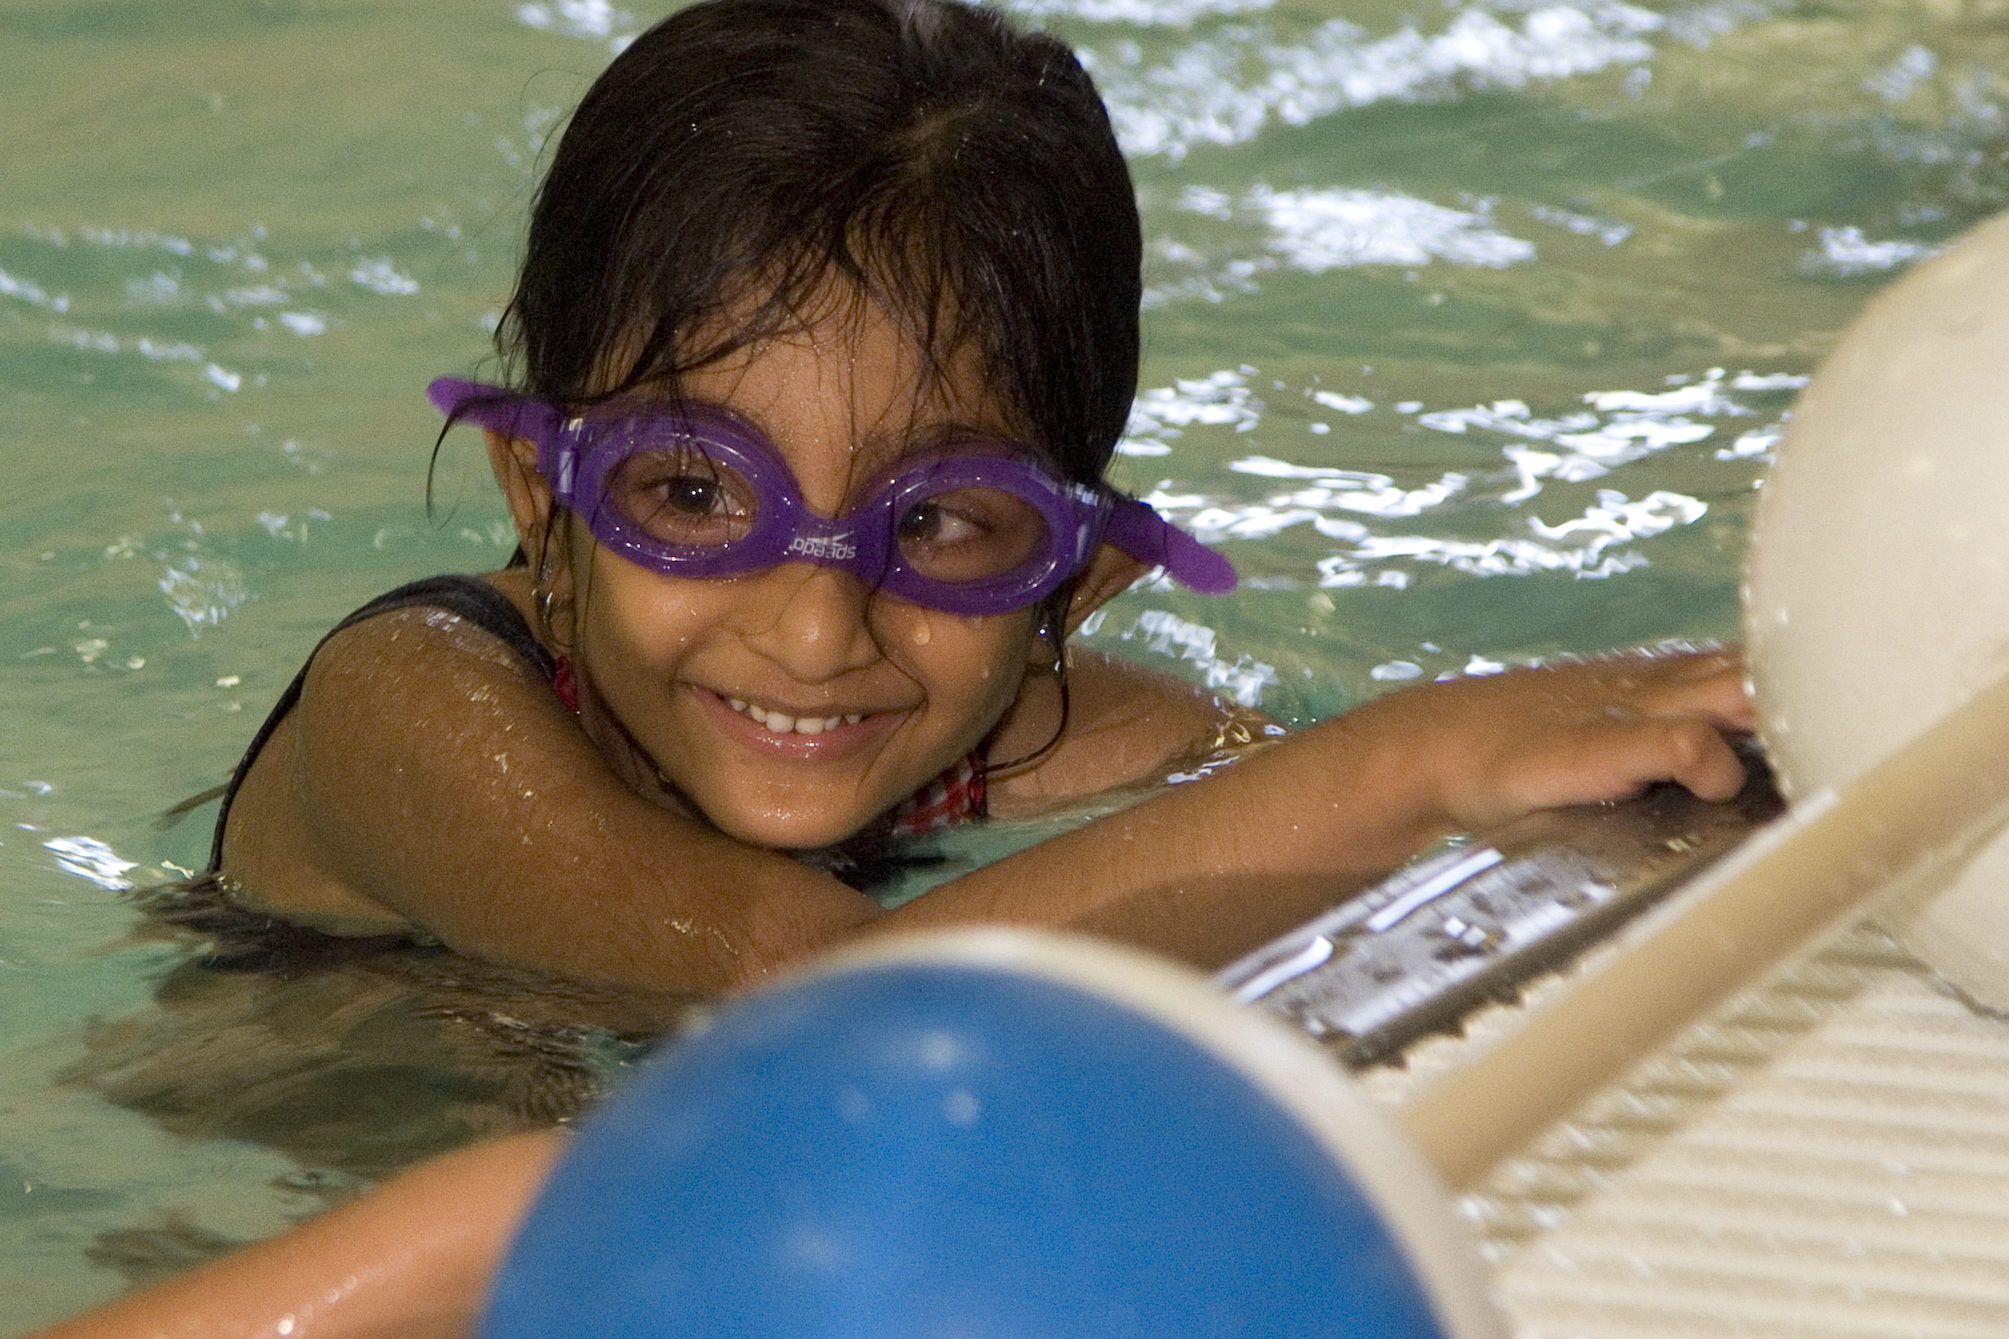 Register Now For Swim Lessons At Fitnation Pool And Warren High School O Plaine Pool Latest